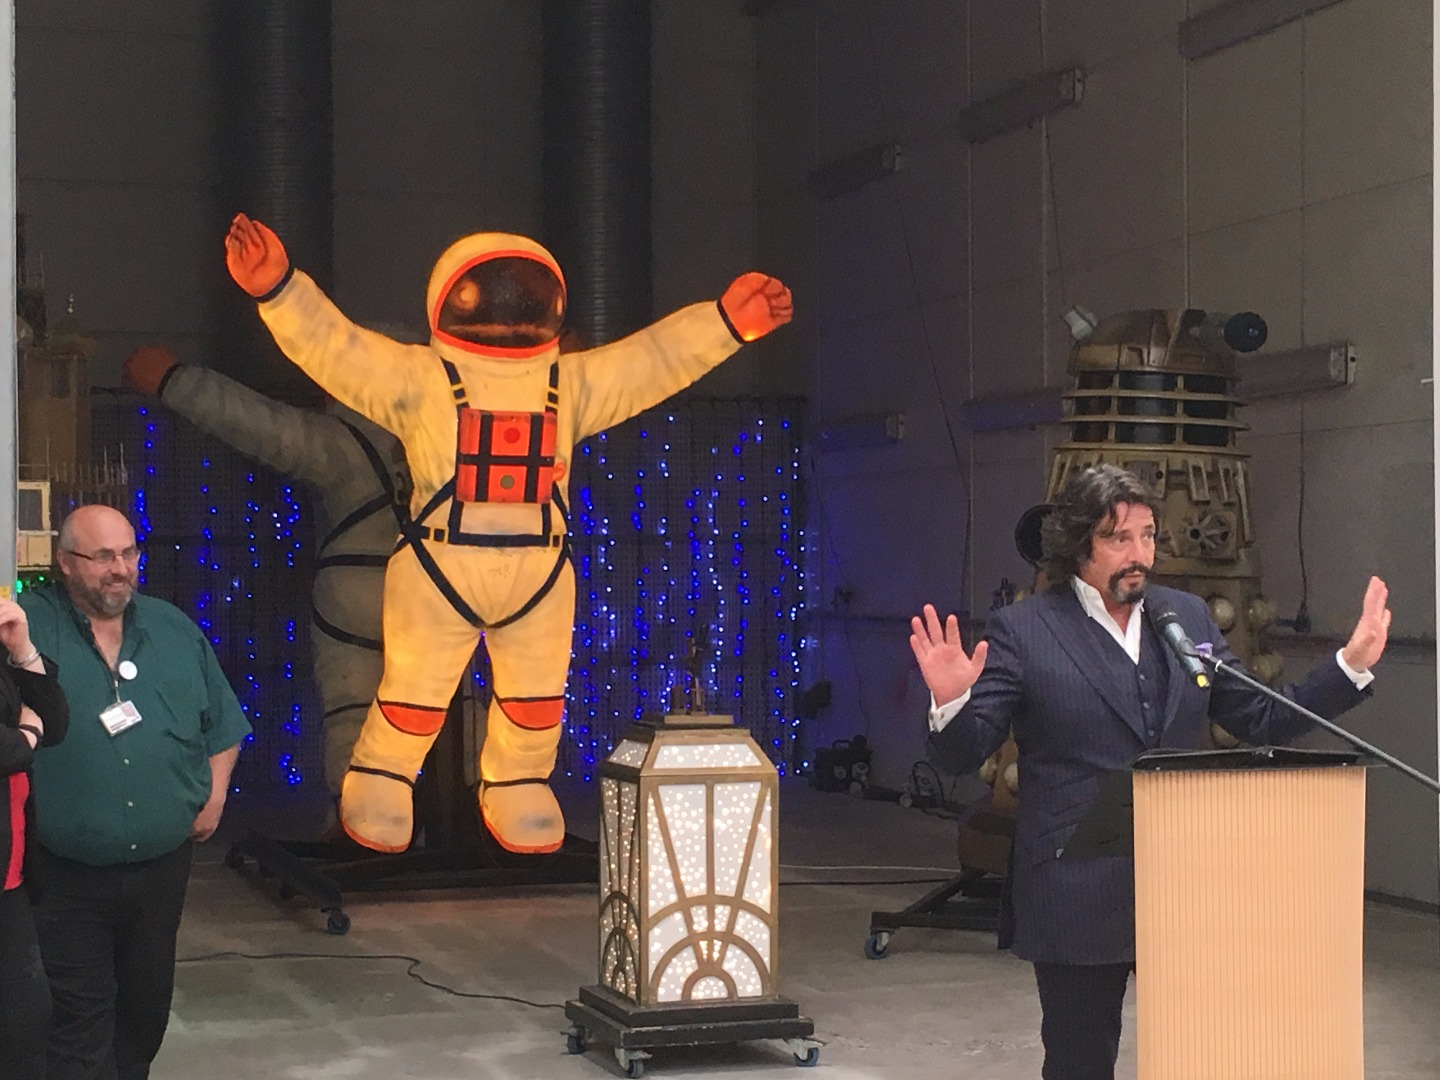 Laurence Llewelyn Bowen at the Blackpool Illuminations season launch, unveiling new Illuminations for 2017